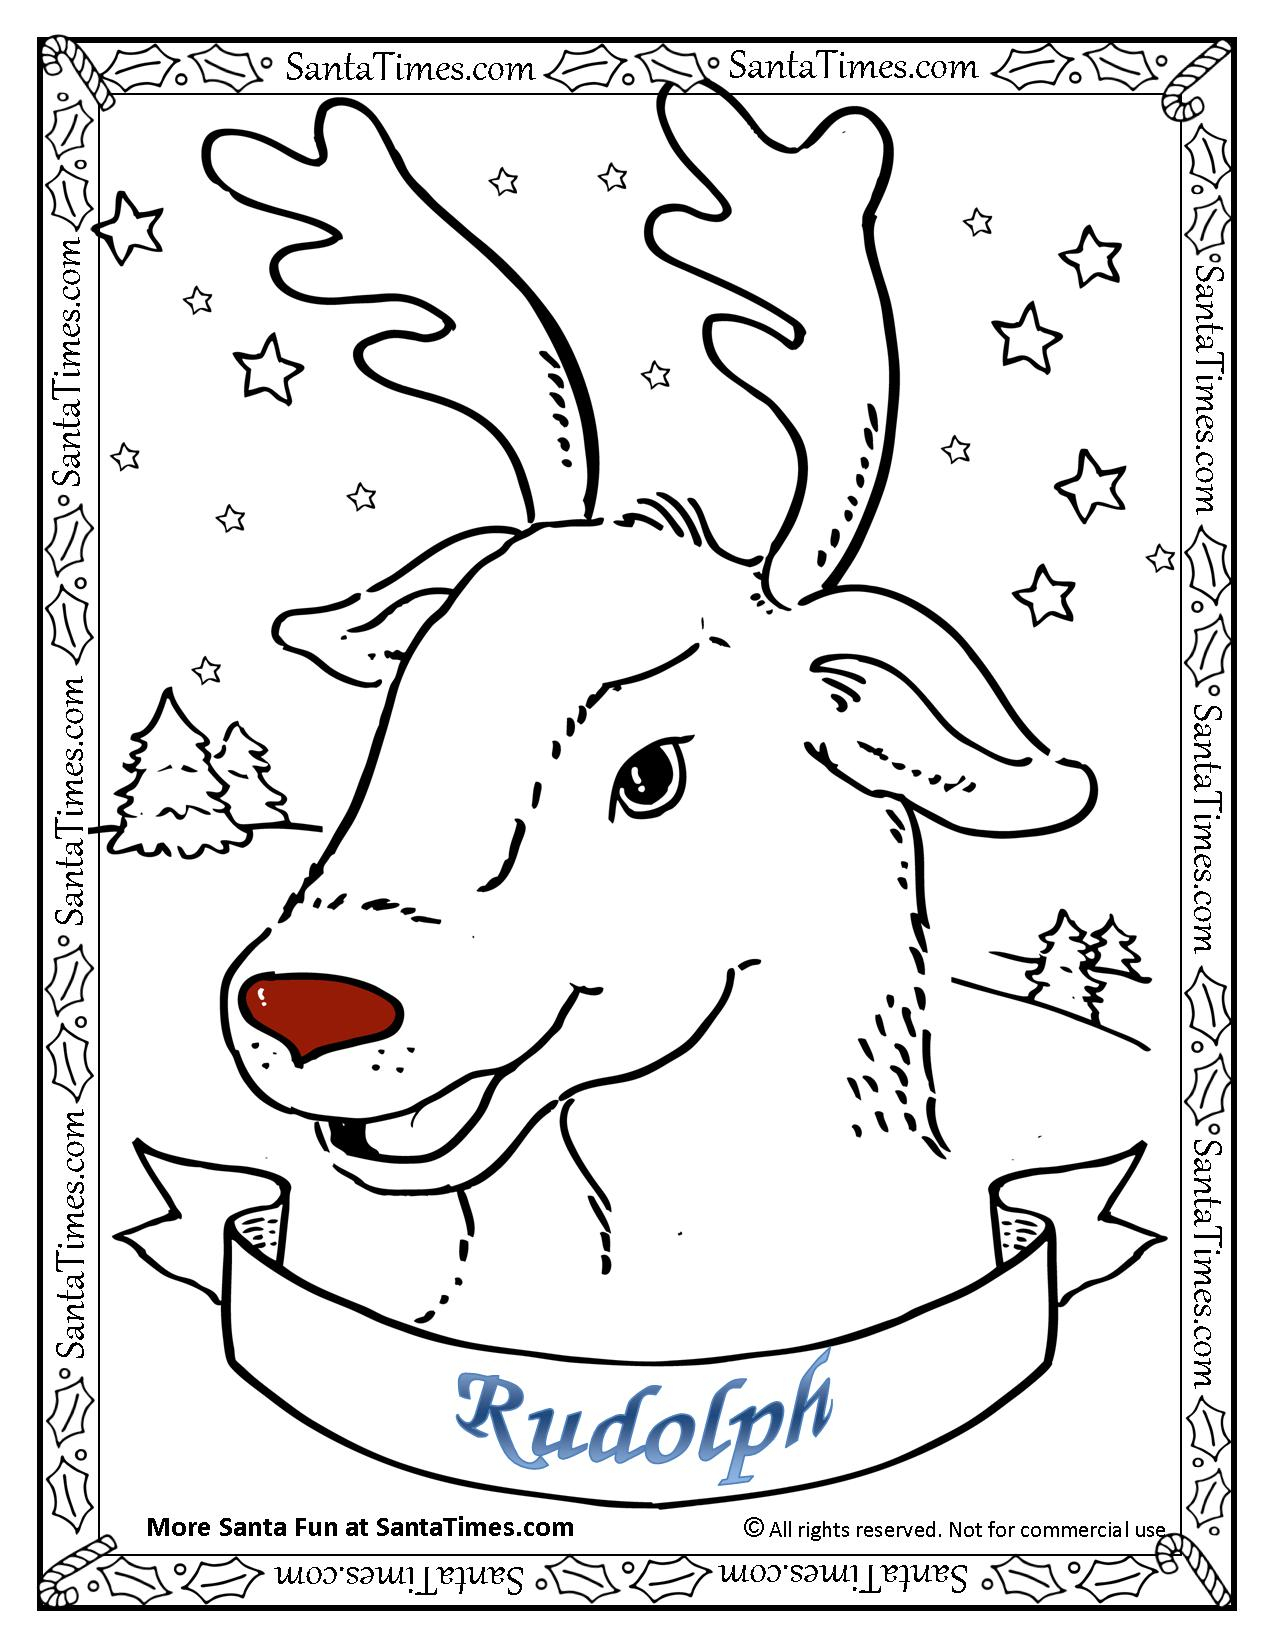 Santa And Rudolph Coloring Pages Rudolph The Red Nosed Reindeer